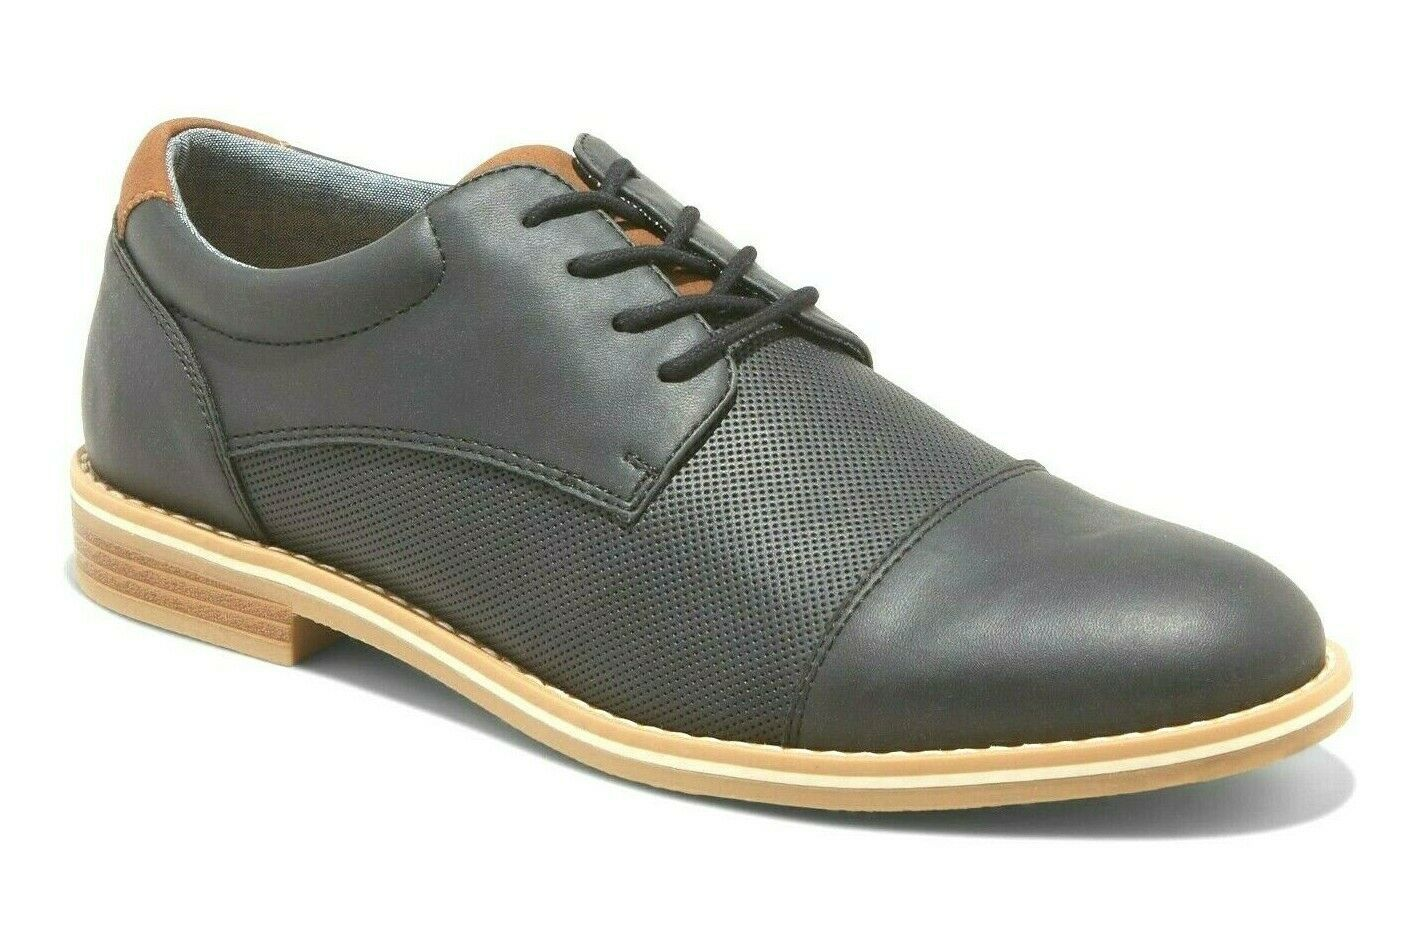 Goodfellow & Co. Black Casual Jarmarcus Lace Up Loafer Shoes Sz 12 US NWT